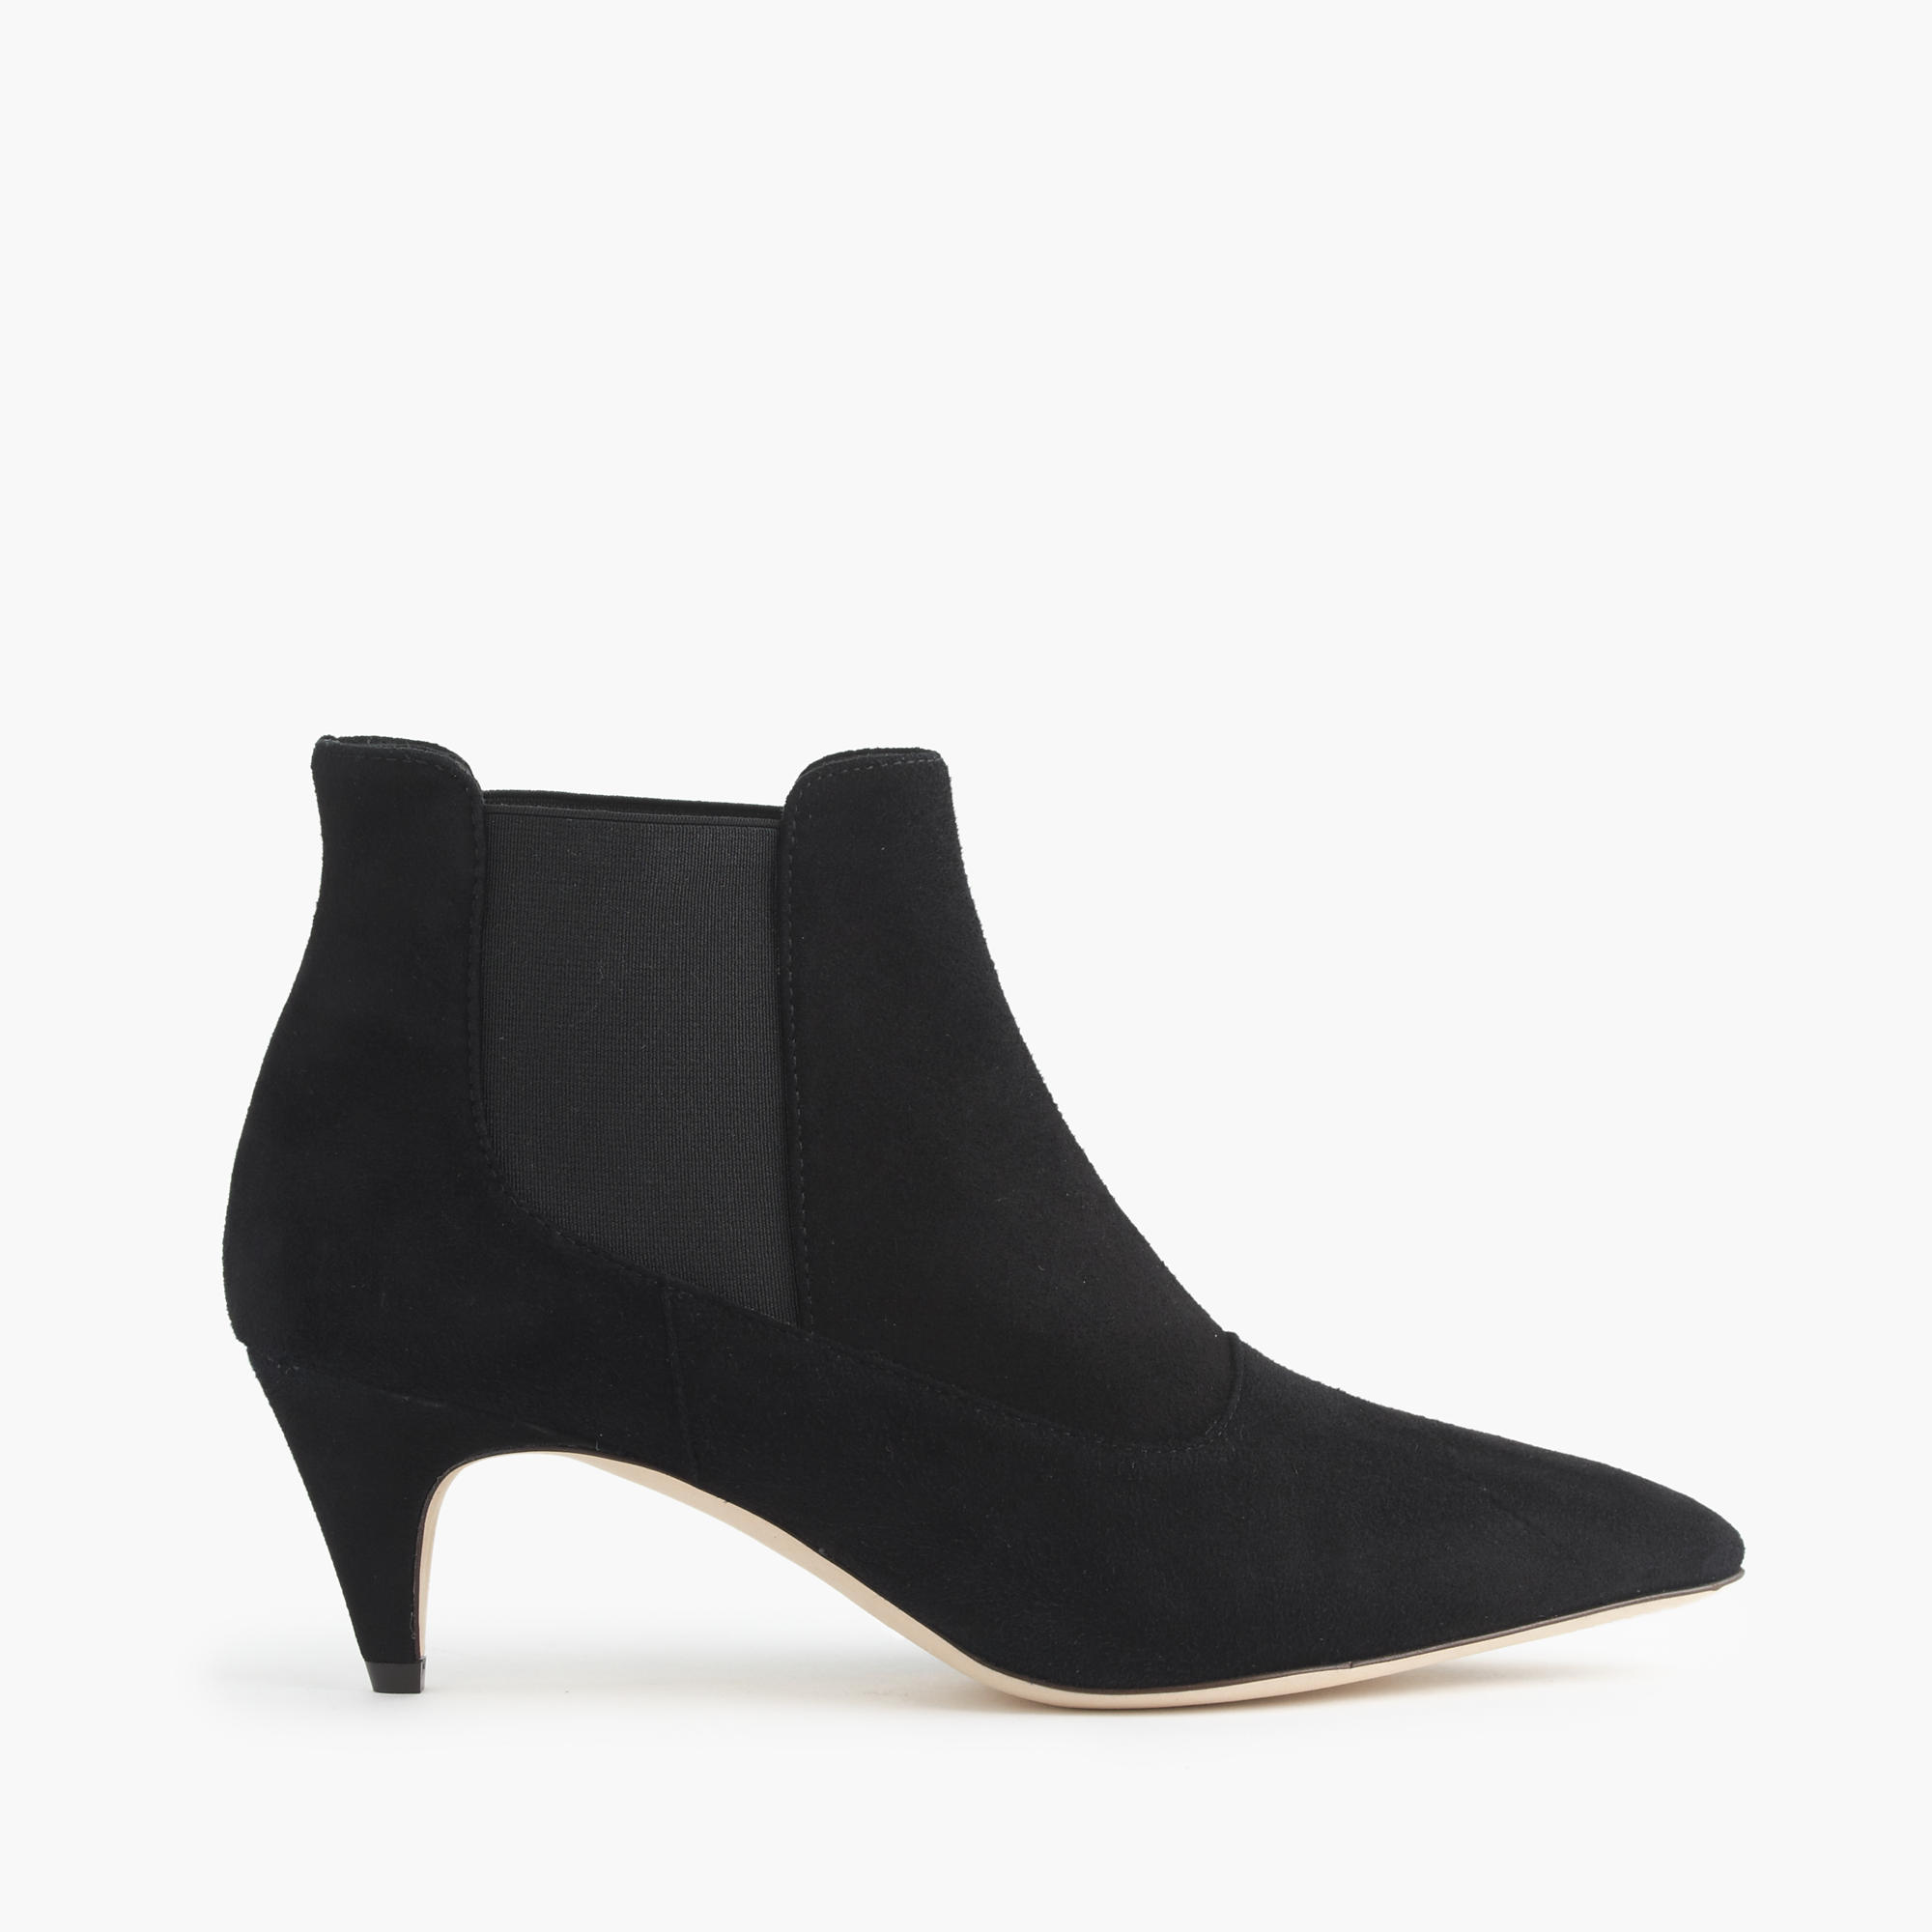 Black Ankle Boots Kitten Heel